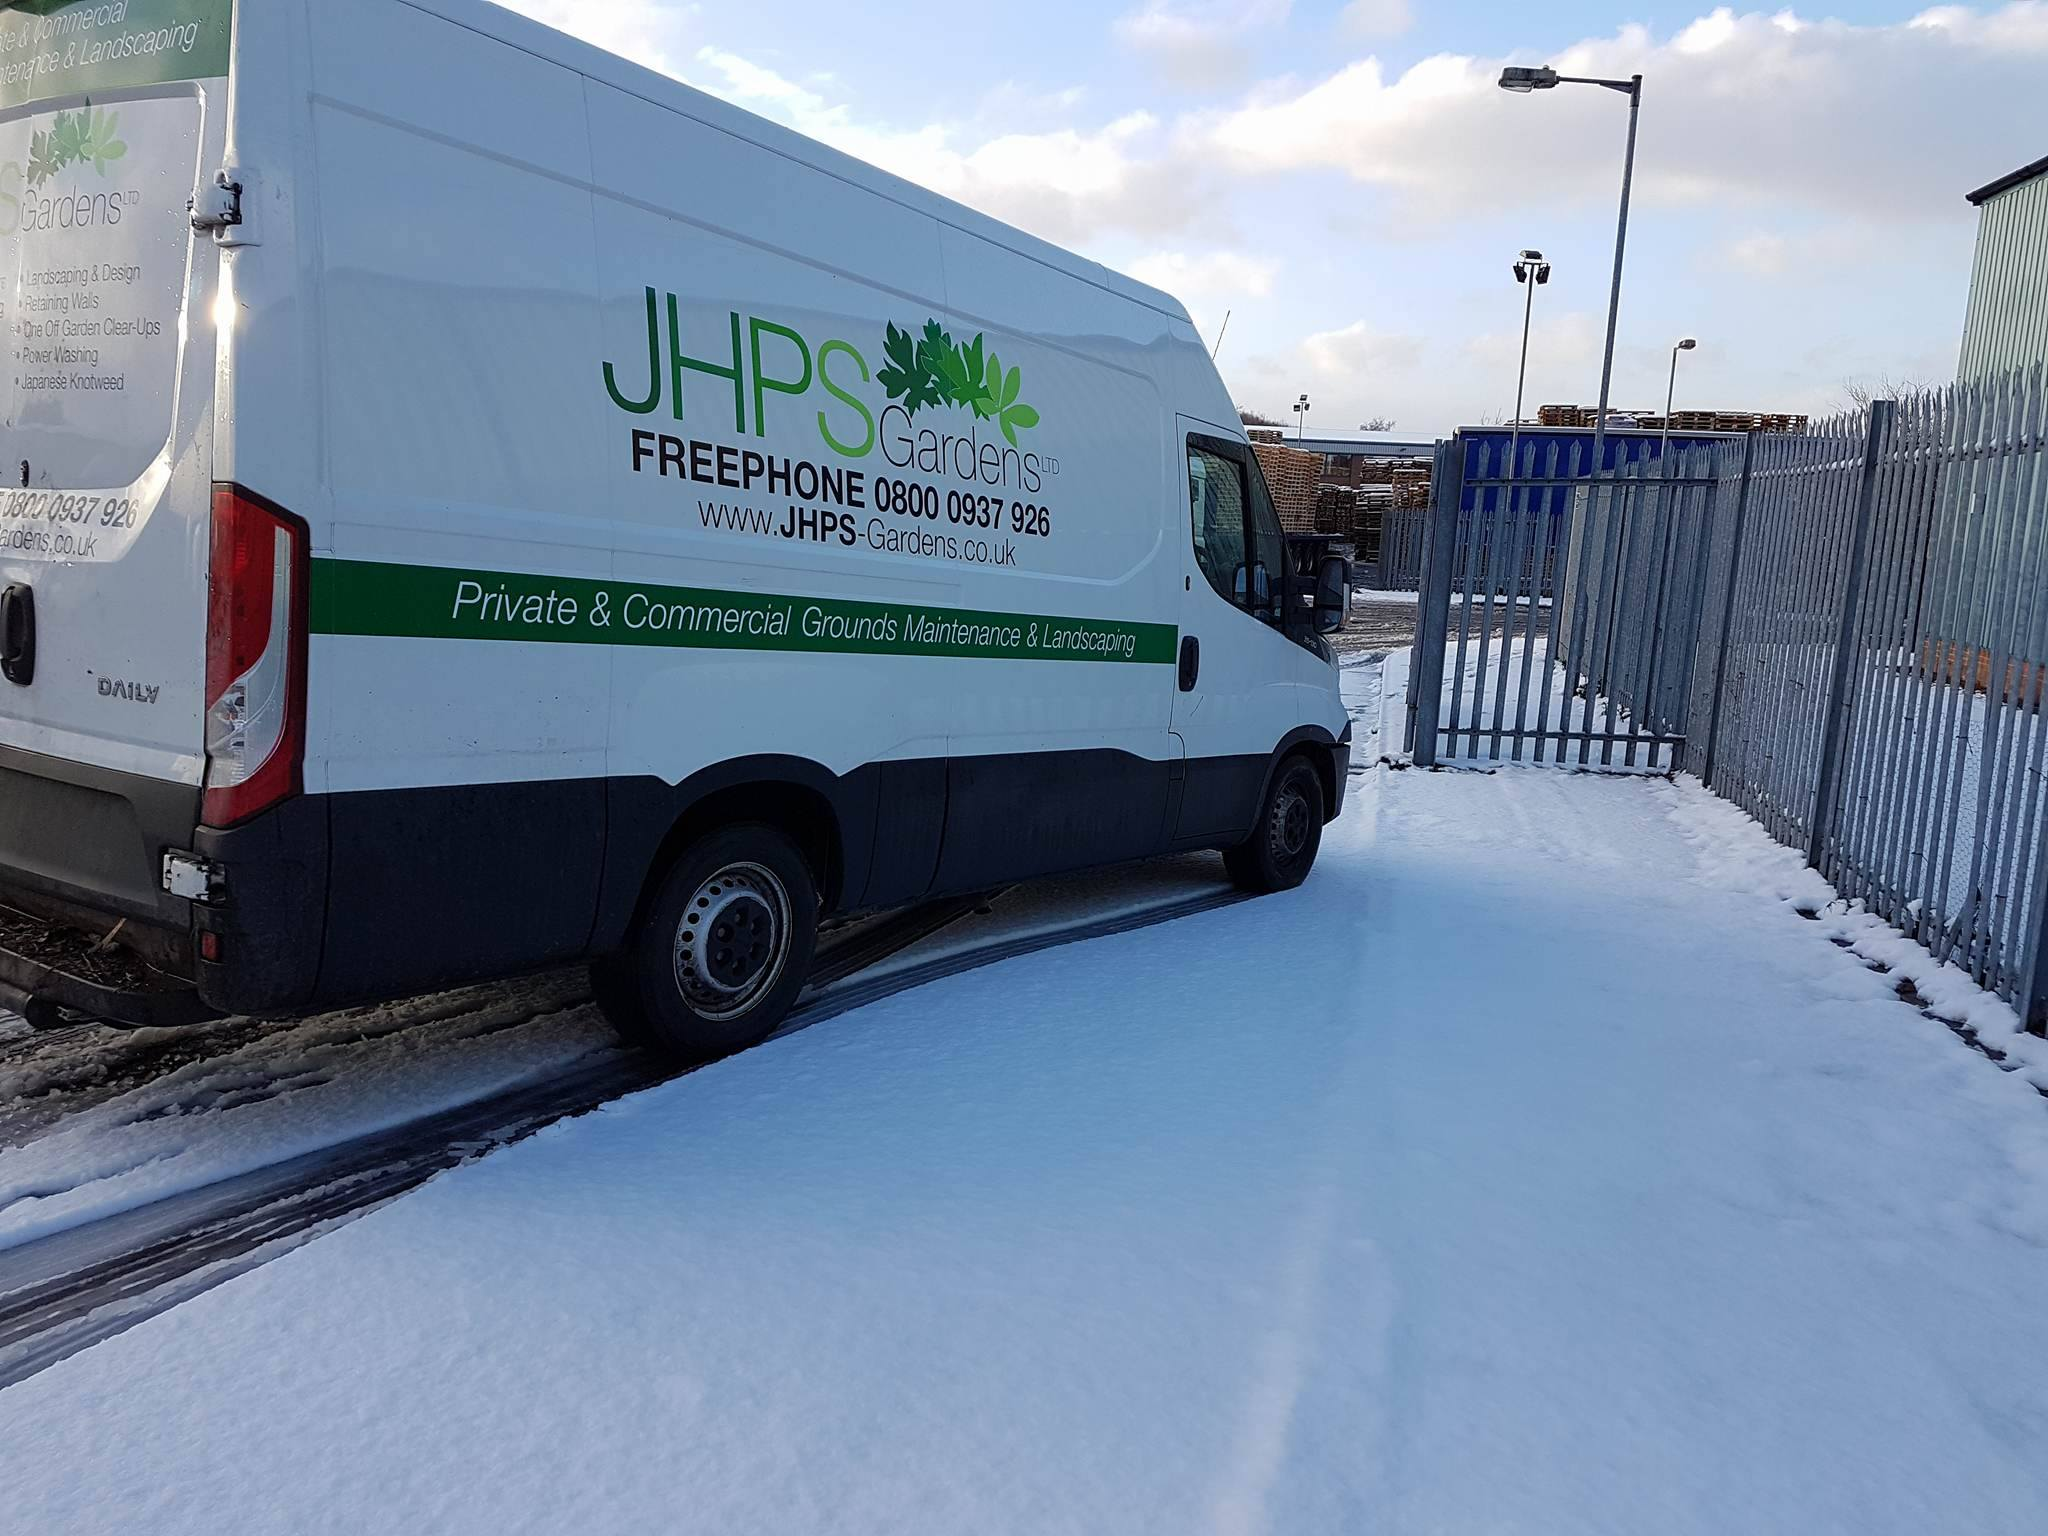 JHPS Gardens - Snowy Top Tips